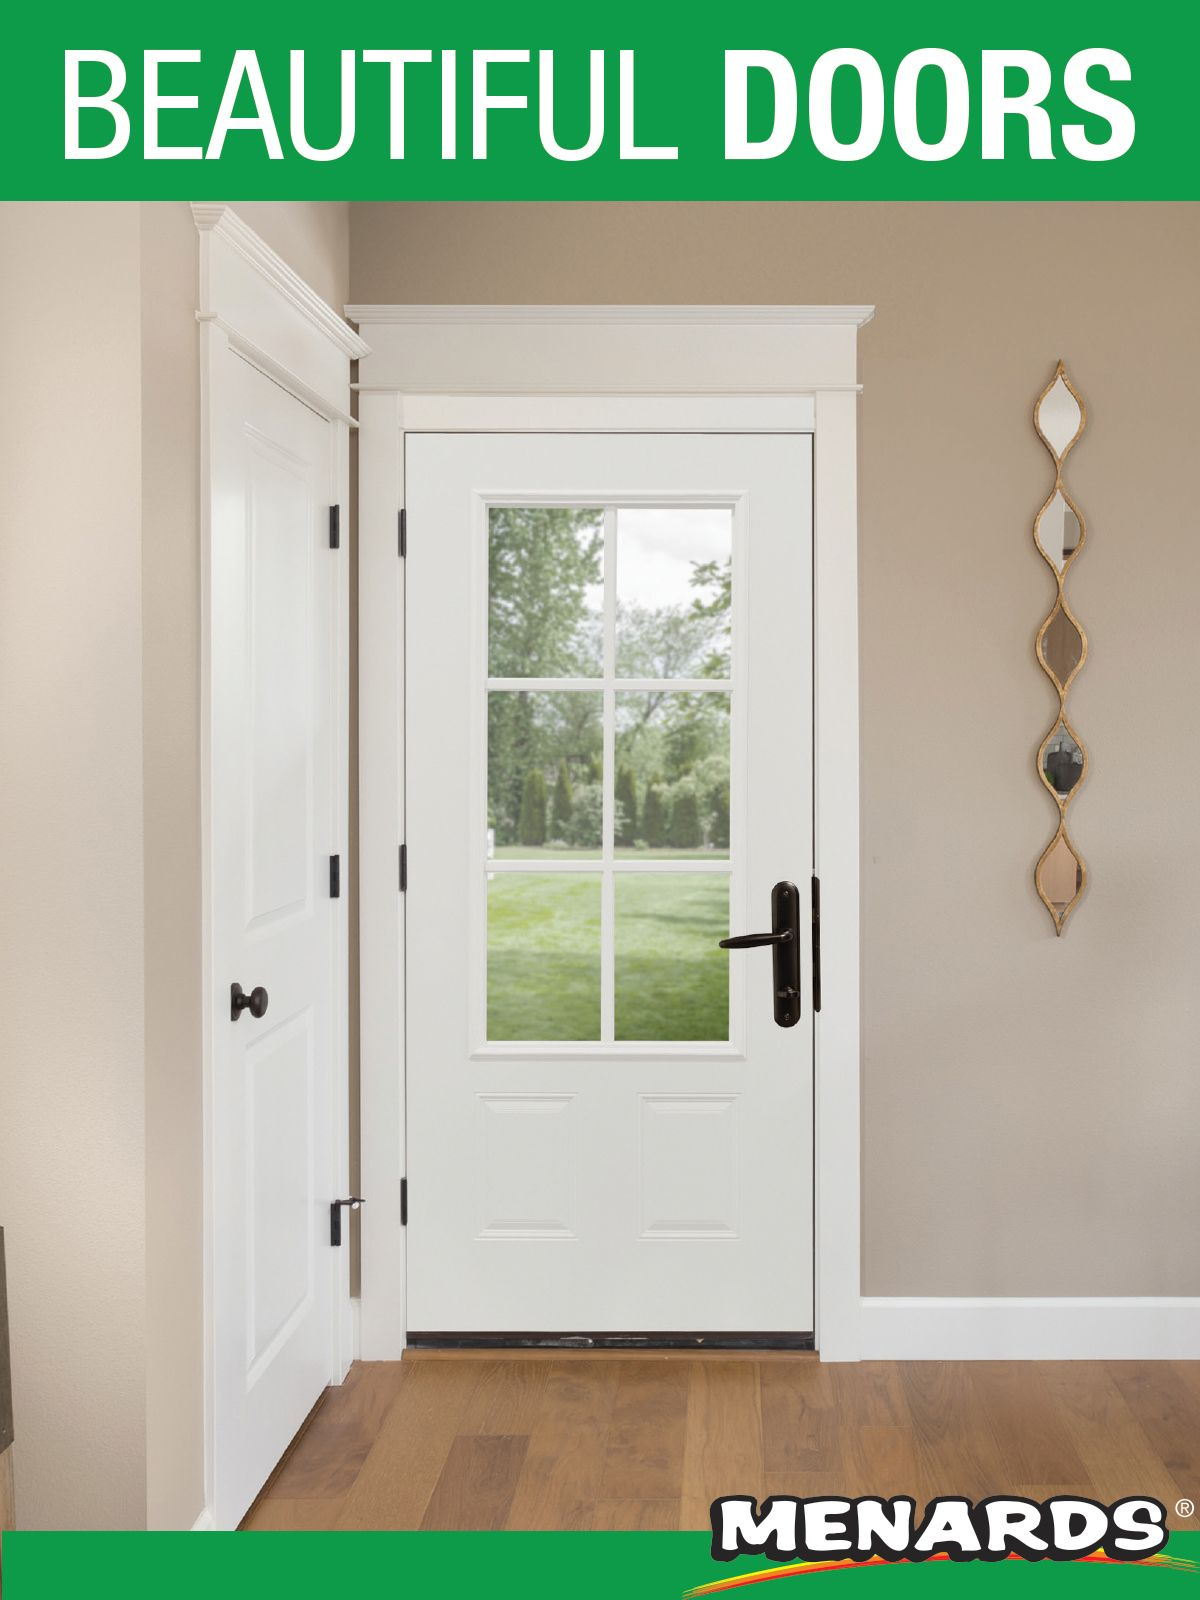 Add A Touch Of Country Charm To Your Entryway With This 3 4 Lite Farmhouse Steel Door With External Grilles From Mas Beautiful Doors Exterior Doors Steel Doors